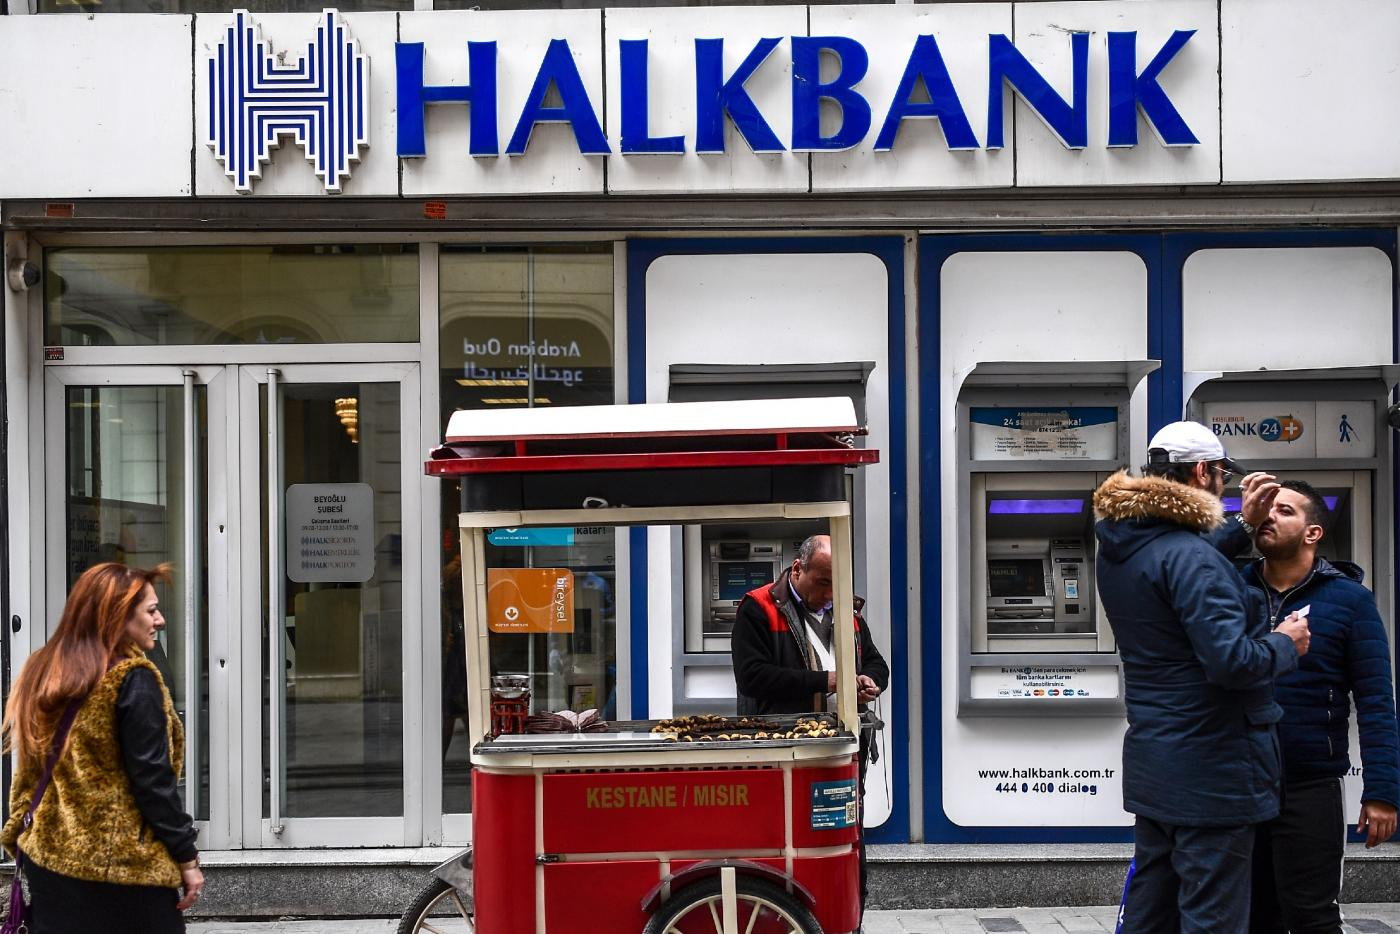 United States accuses Turkey's Halkbank of violating Iran sanctions